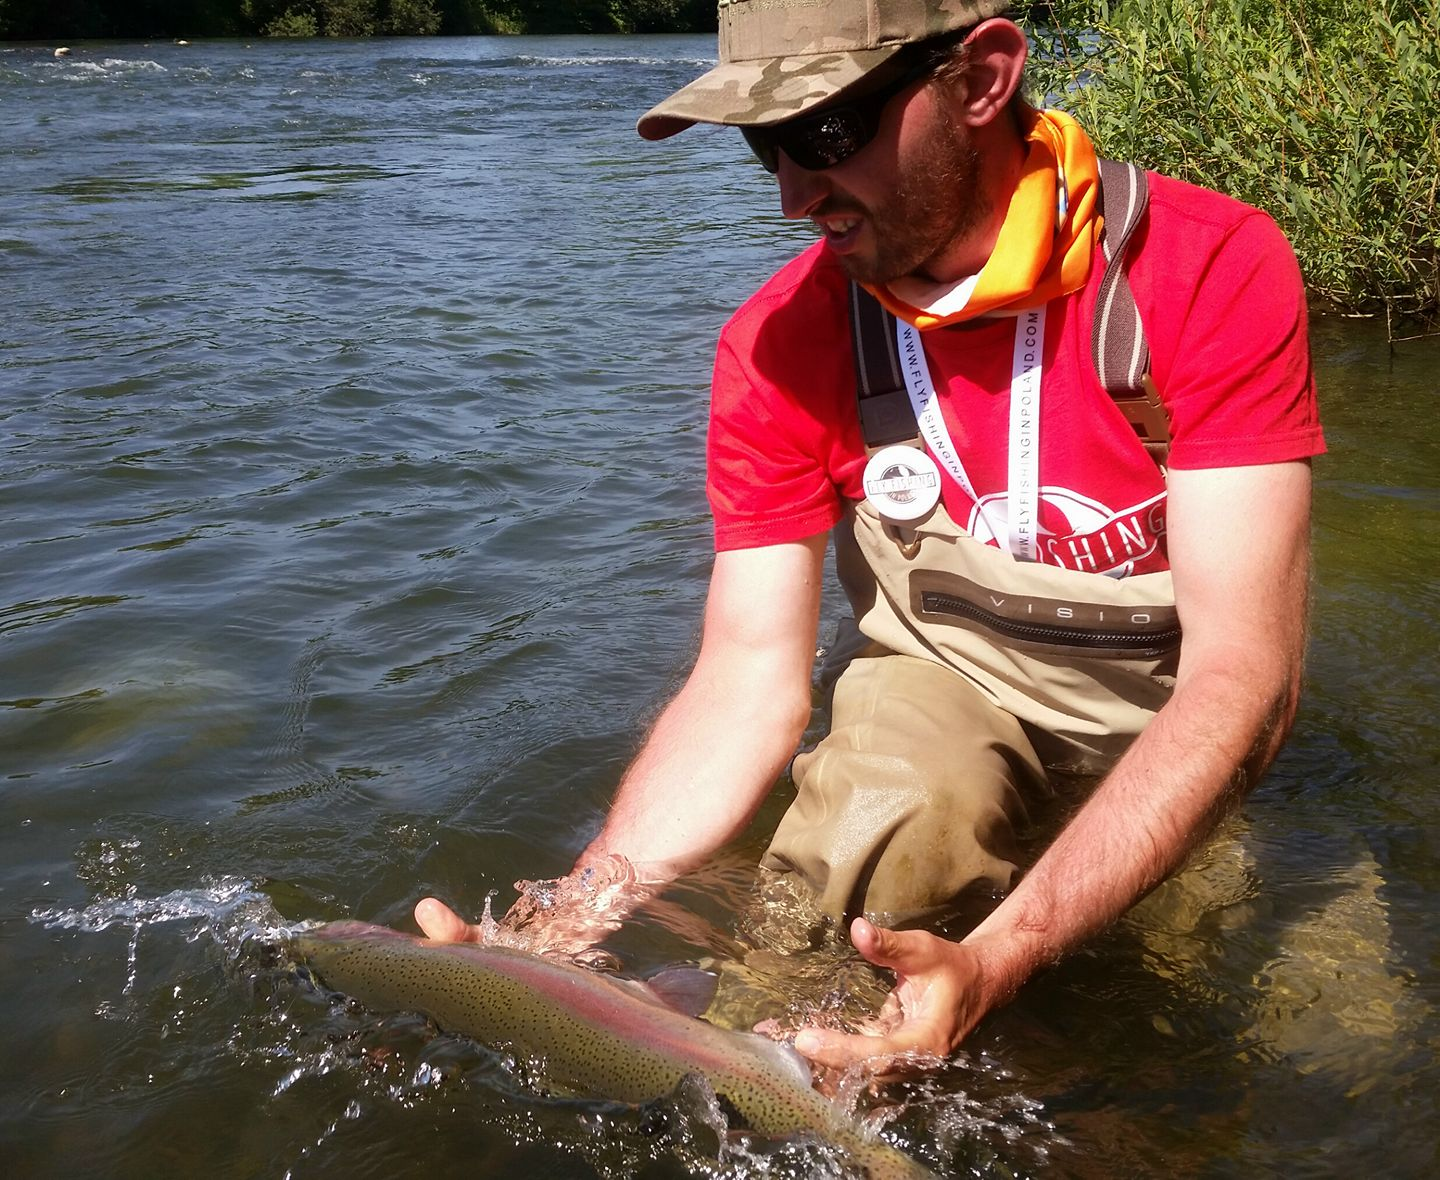 C&R fishing - Best fly fishing in Poland